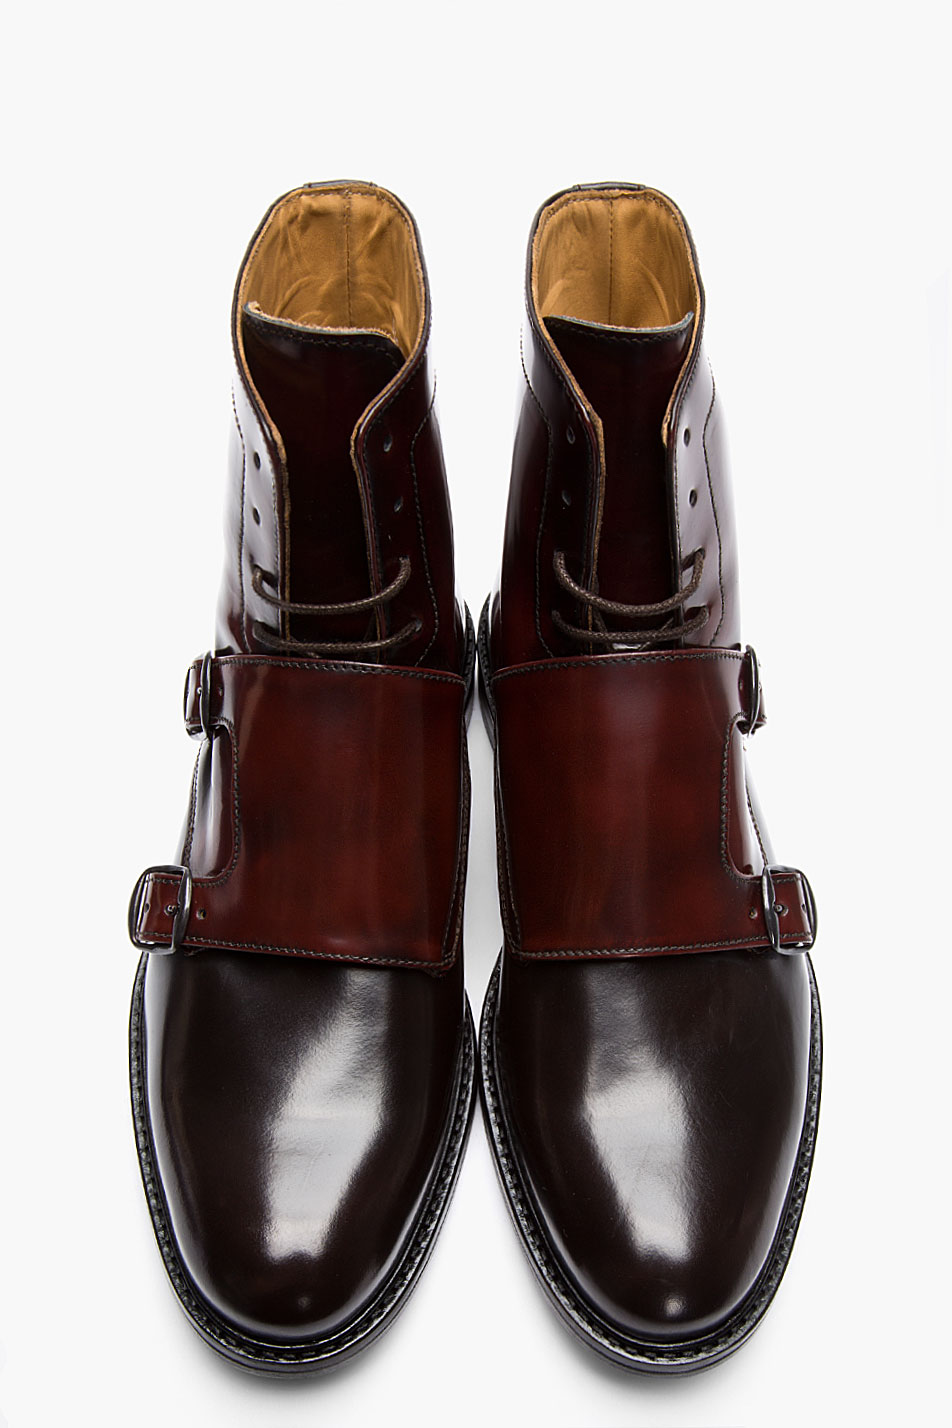 Carven Mahogany Two_tone Monk Strap Boots in Burgundy